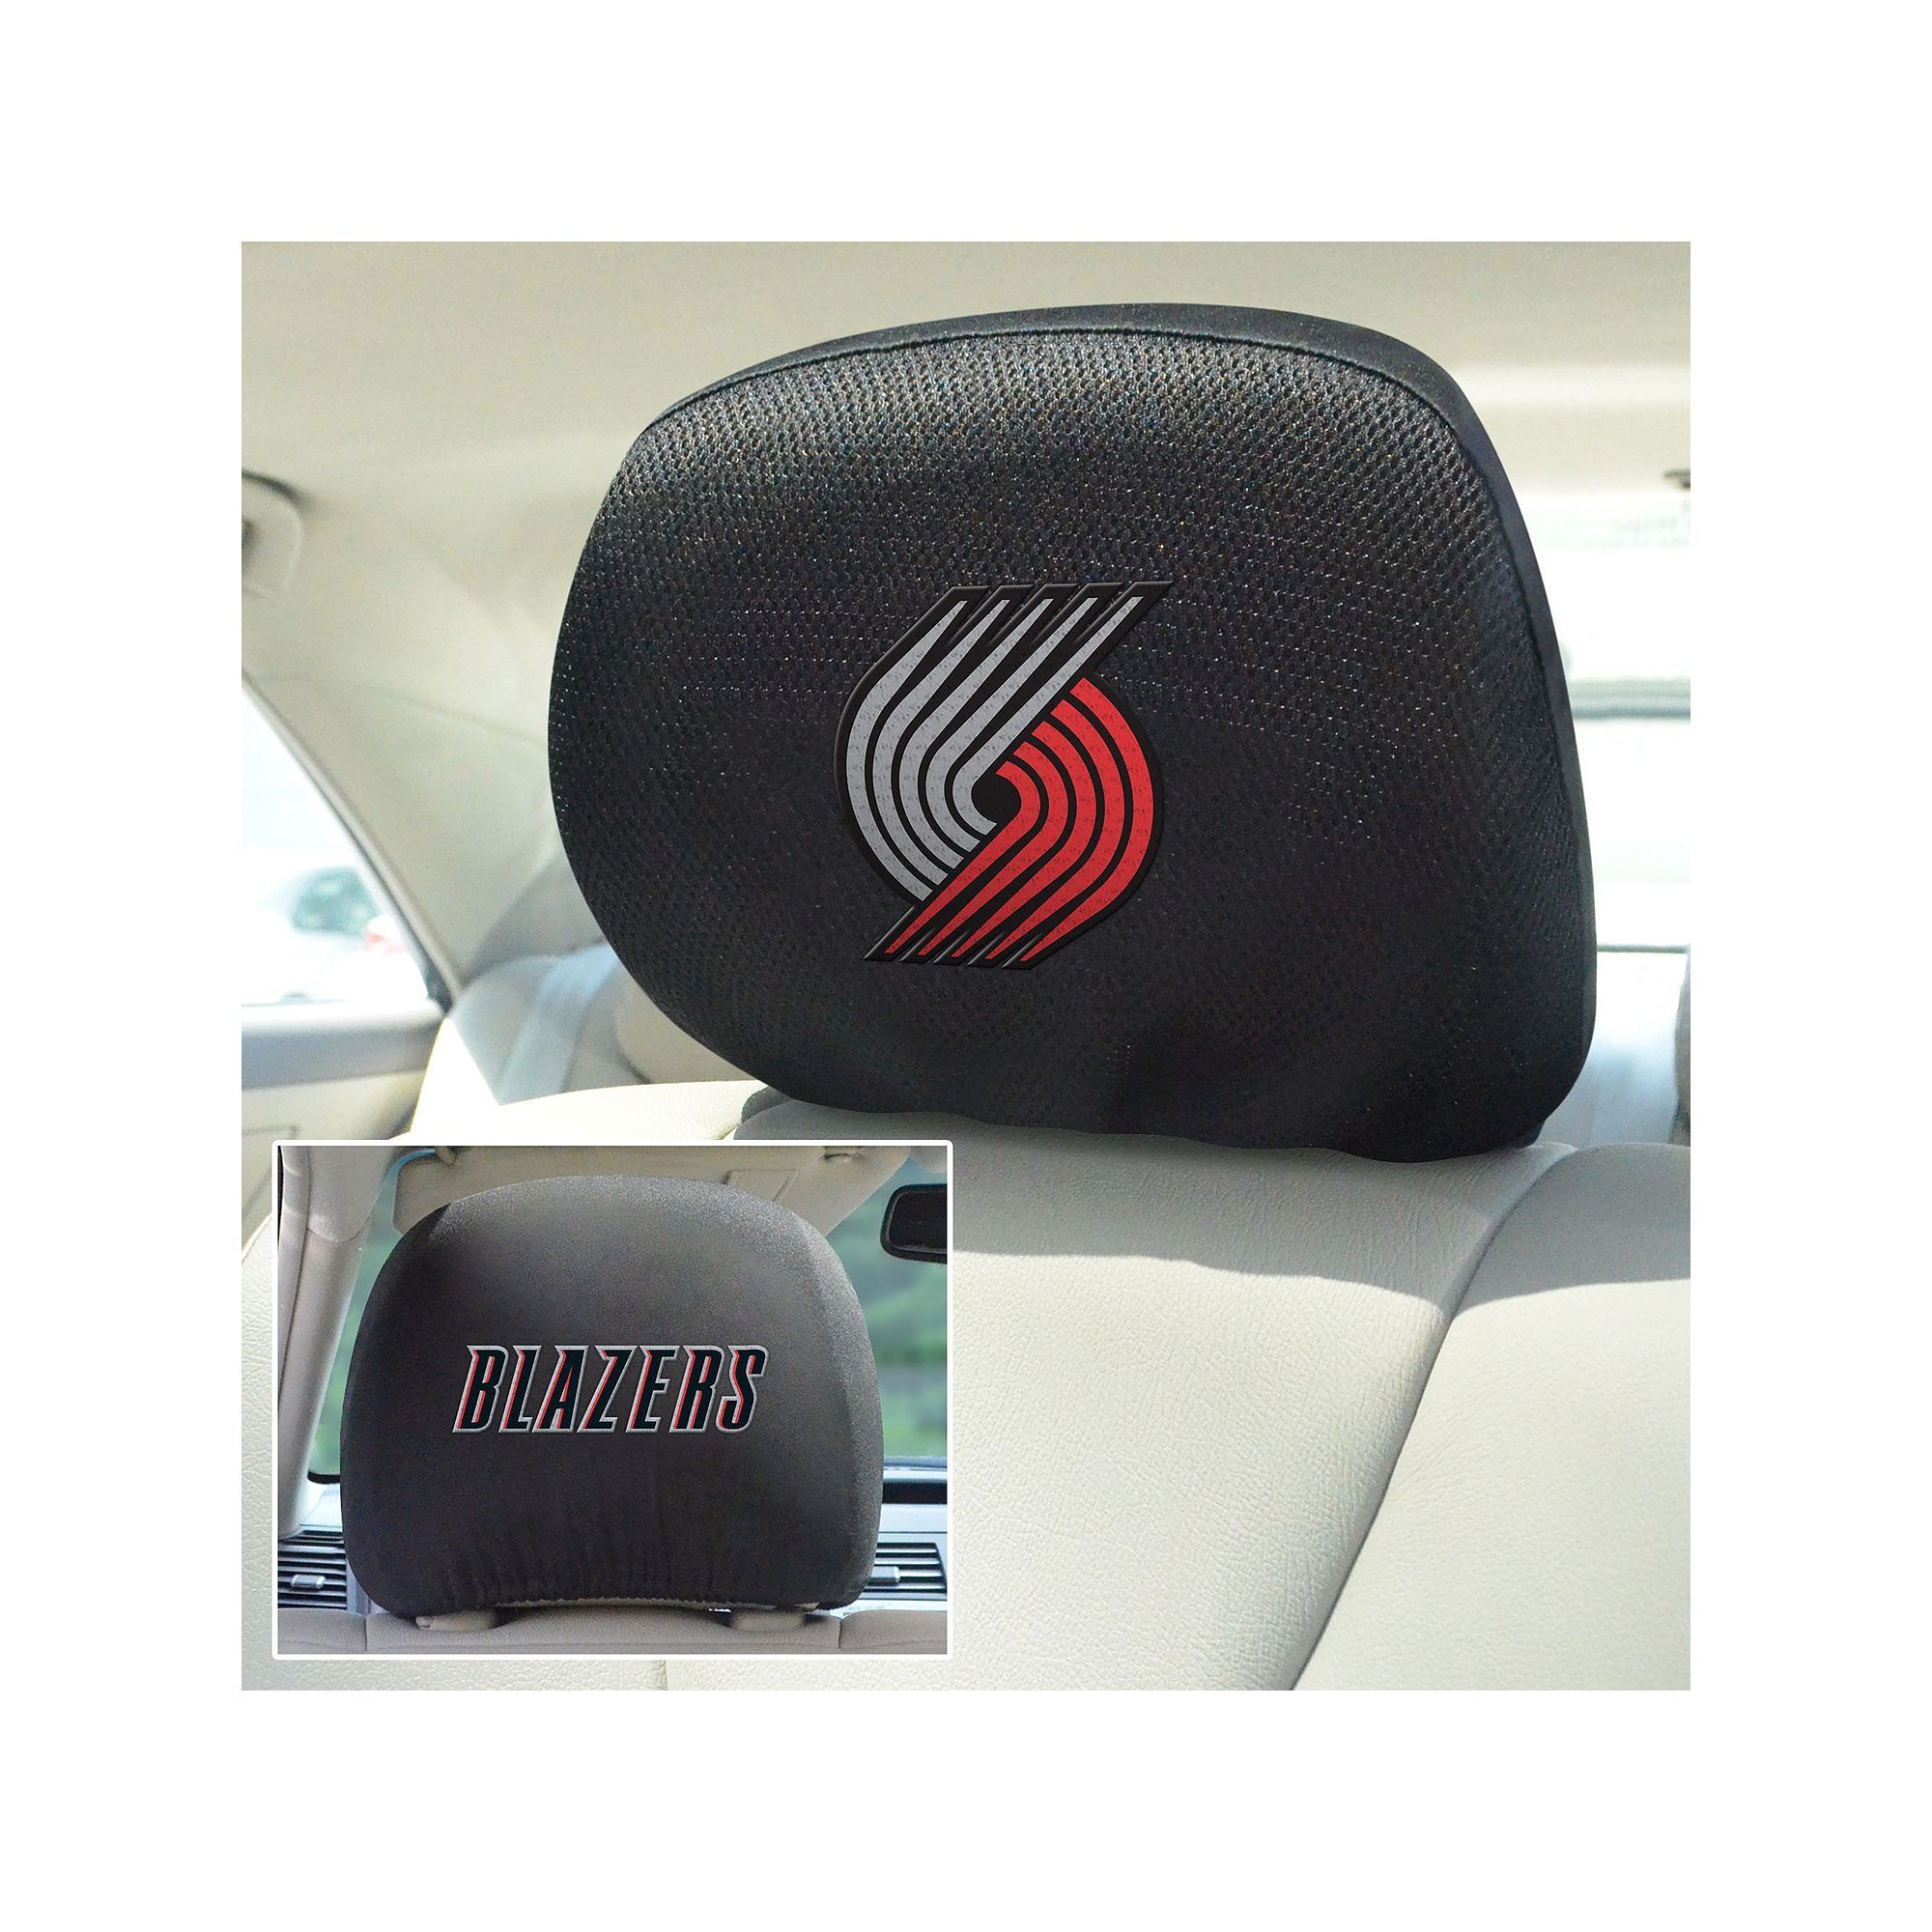 FANMATS NCAA University of Oklahoma Sooners Polyester Head Rest Cover